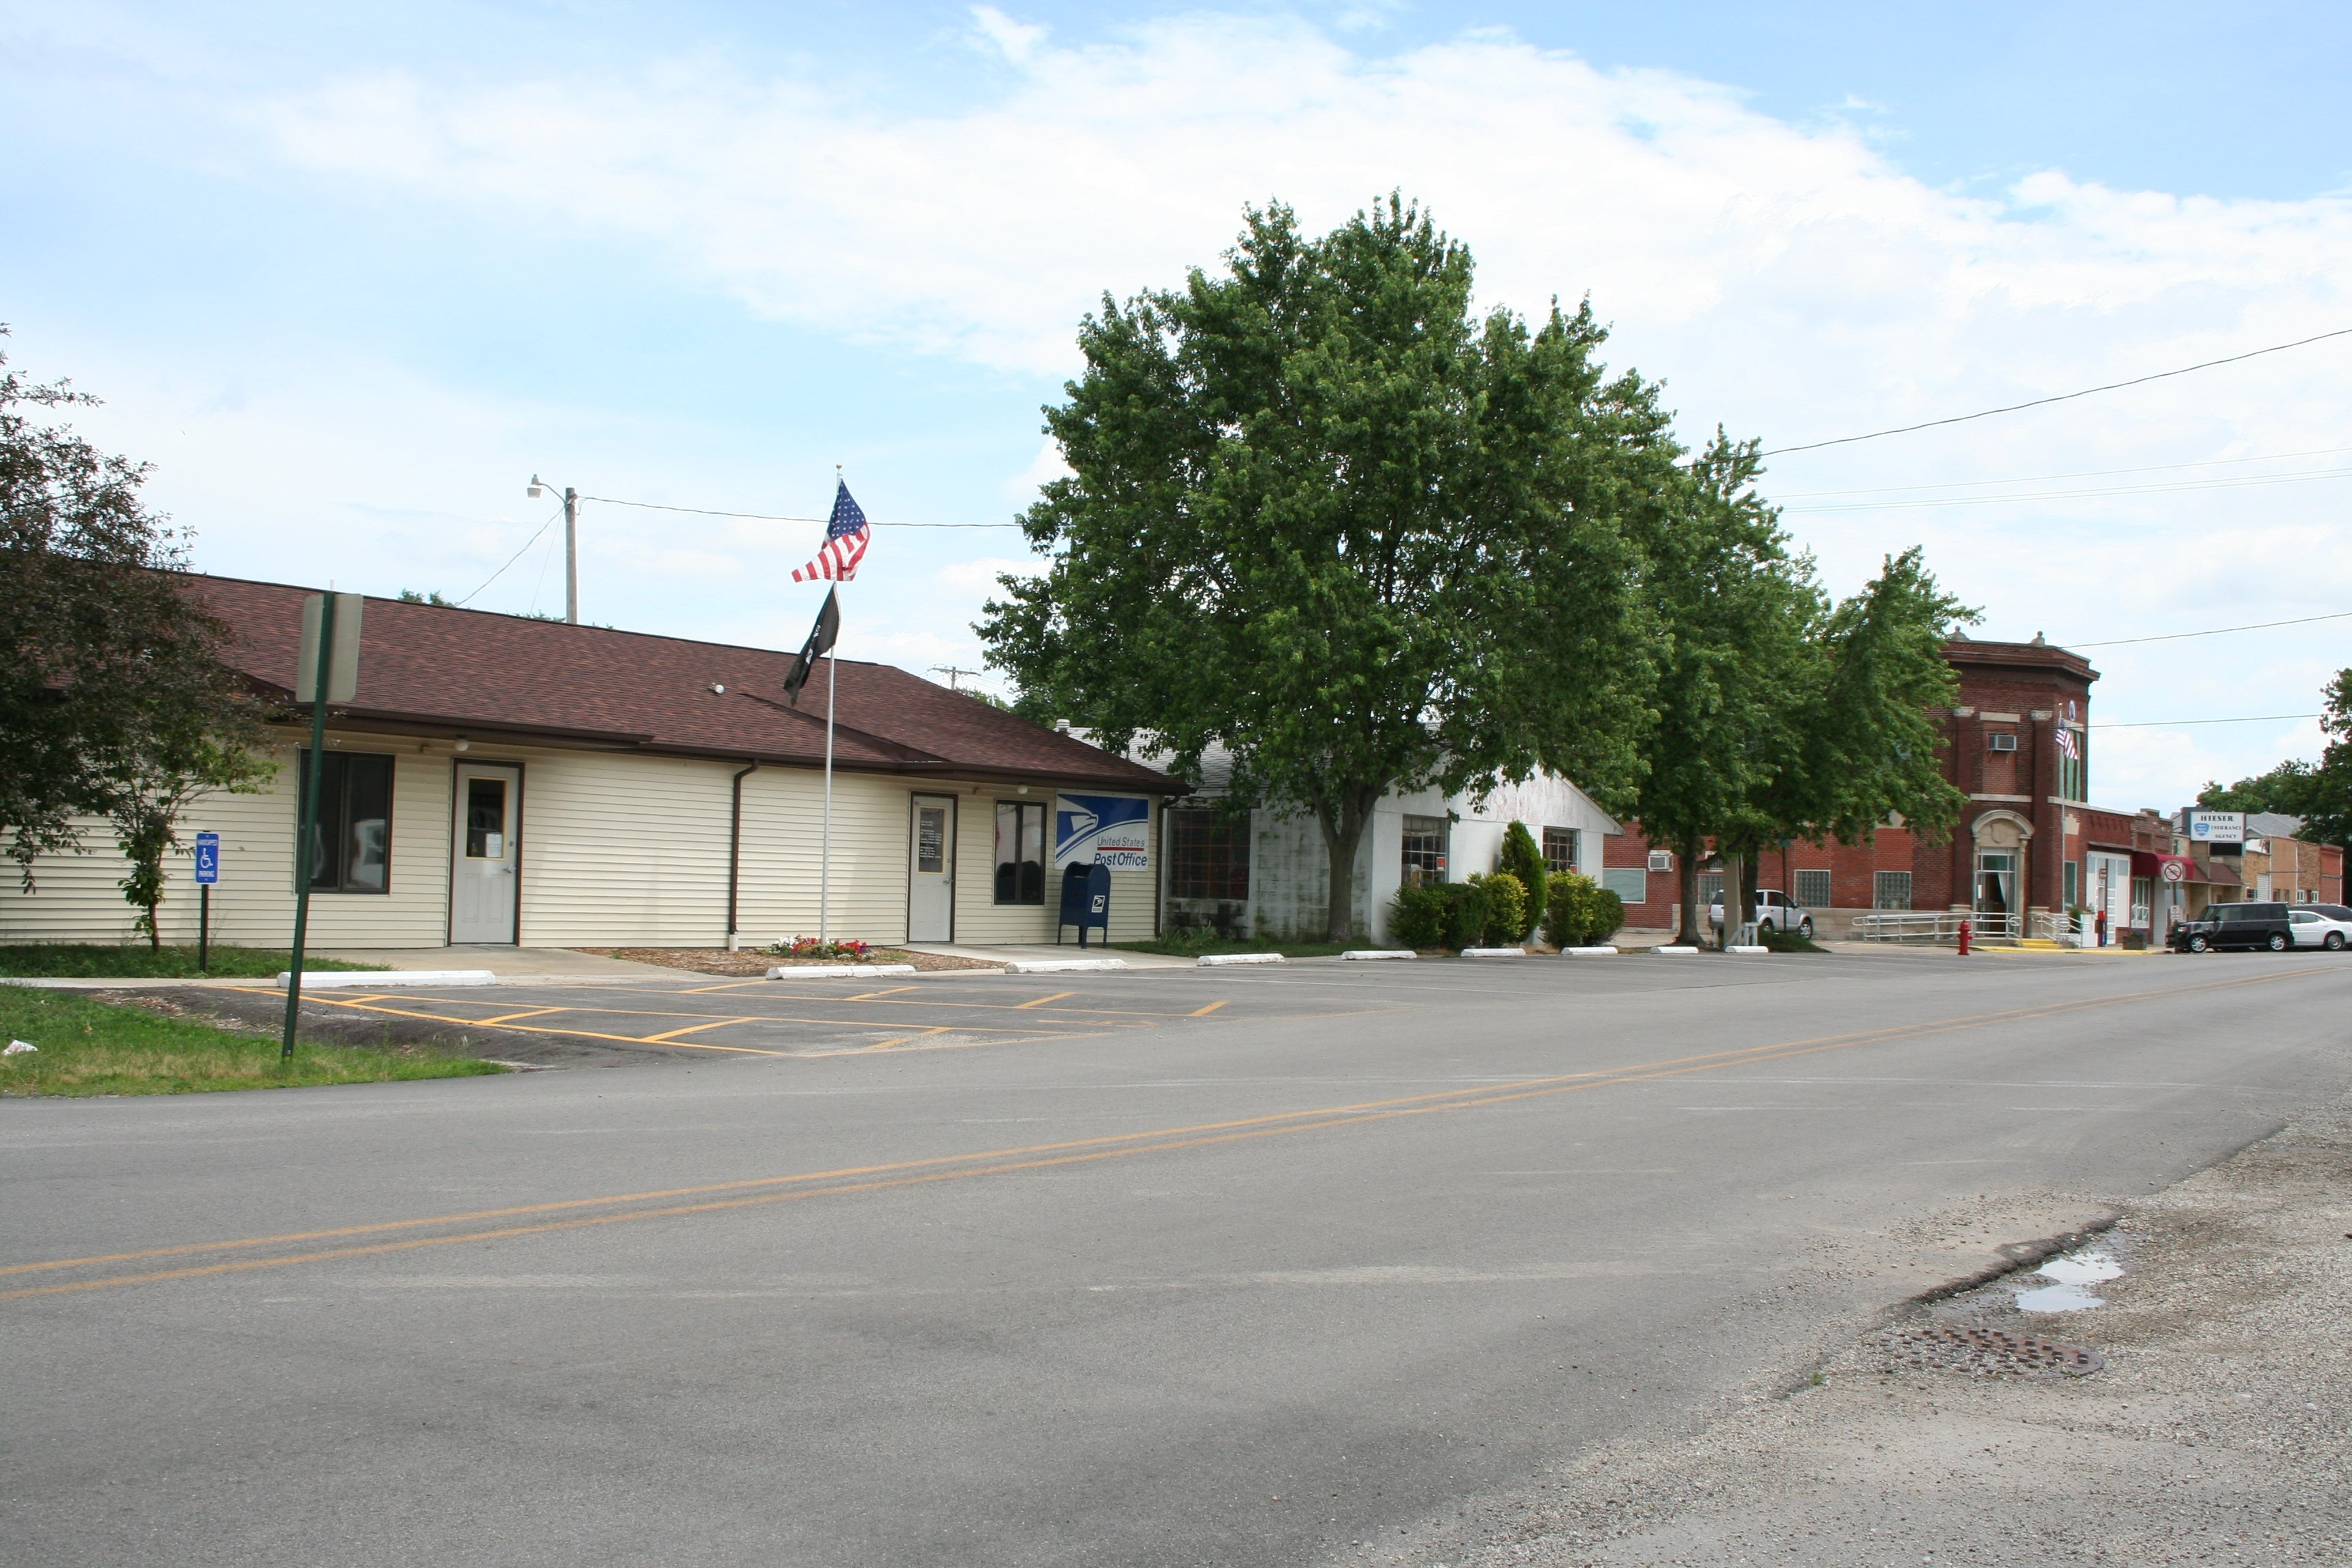 Ford City Champaign Il >> Fisher Funeral Homes, funeral services & flowers in Illinois